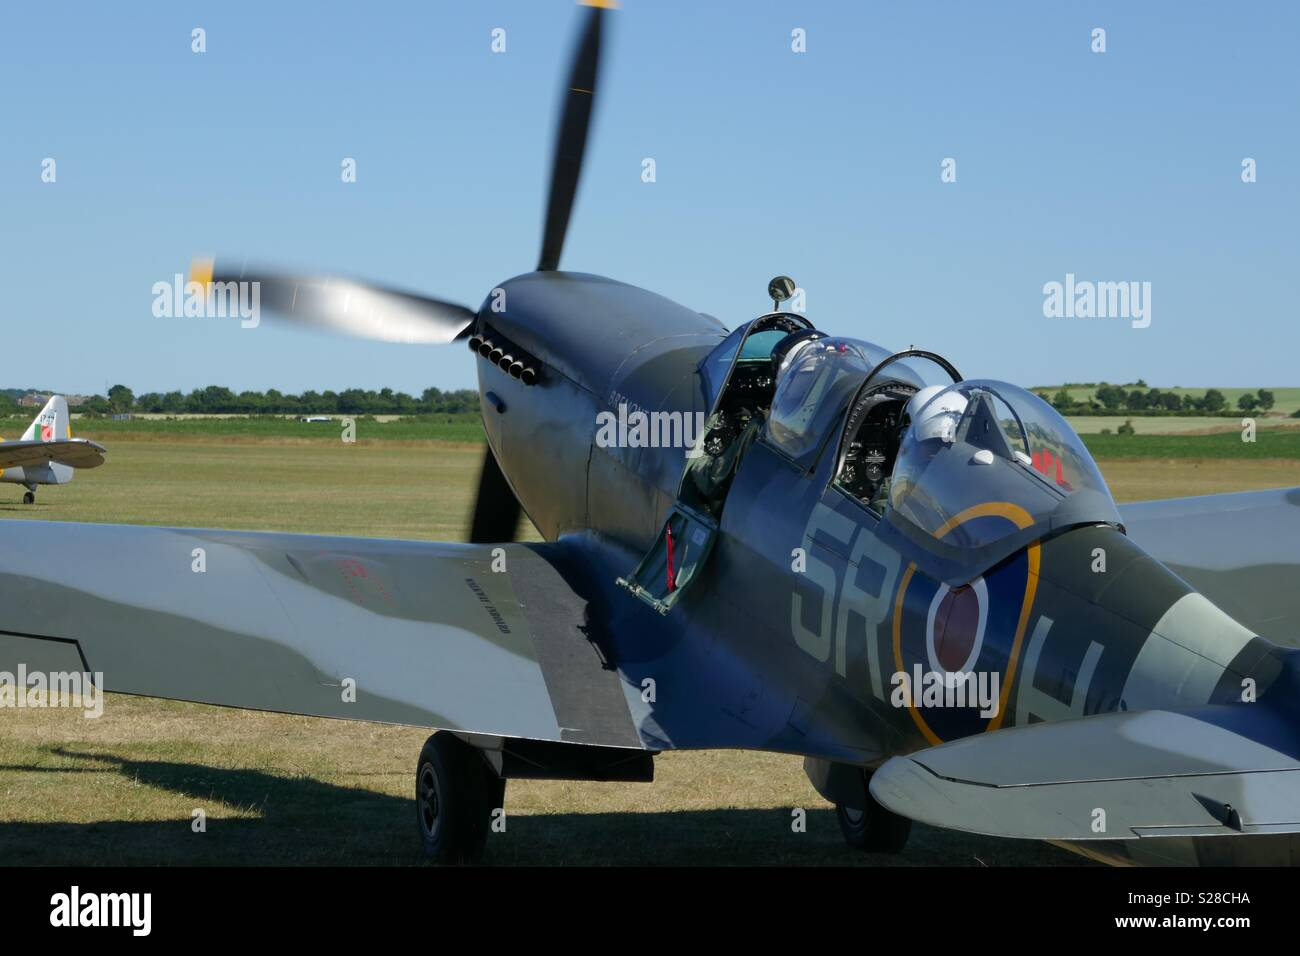 Spitfire taxiing to take off at Duxford Aerodrome, UK - Stock Image